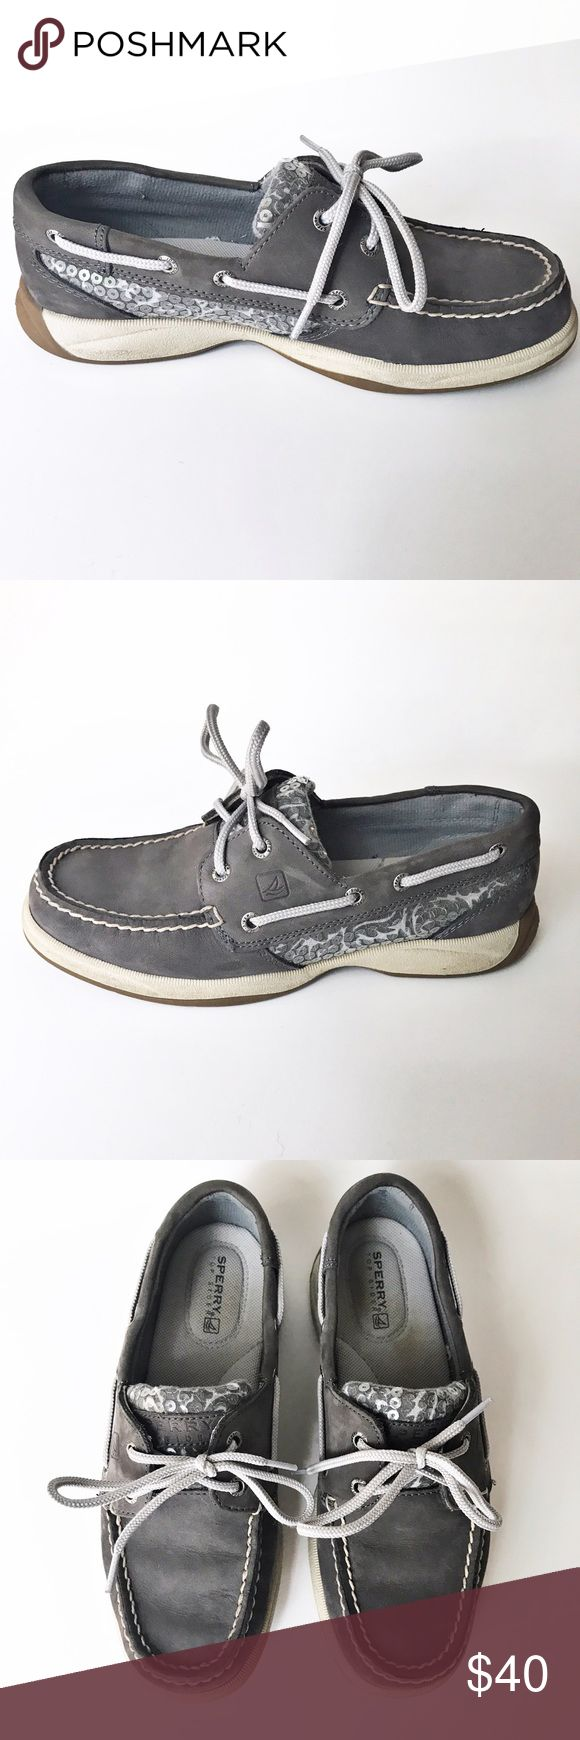 Sperry Top-Sider Gray Suede Leather Boat Shoes Excellent Condition Sperry Top-Sider Gray Suede and sequin boat shoes. Worn once! Super comfortable. Bundle & Save! Sperry Top-Sider Shoes Flats & Loafers